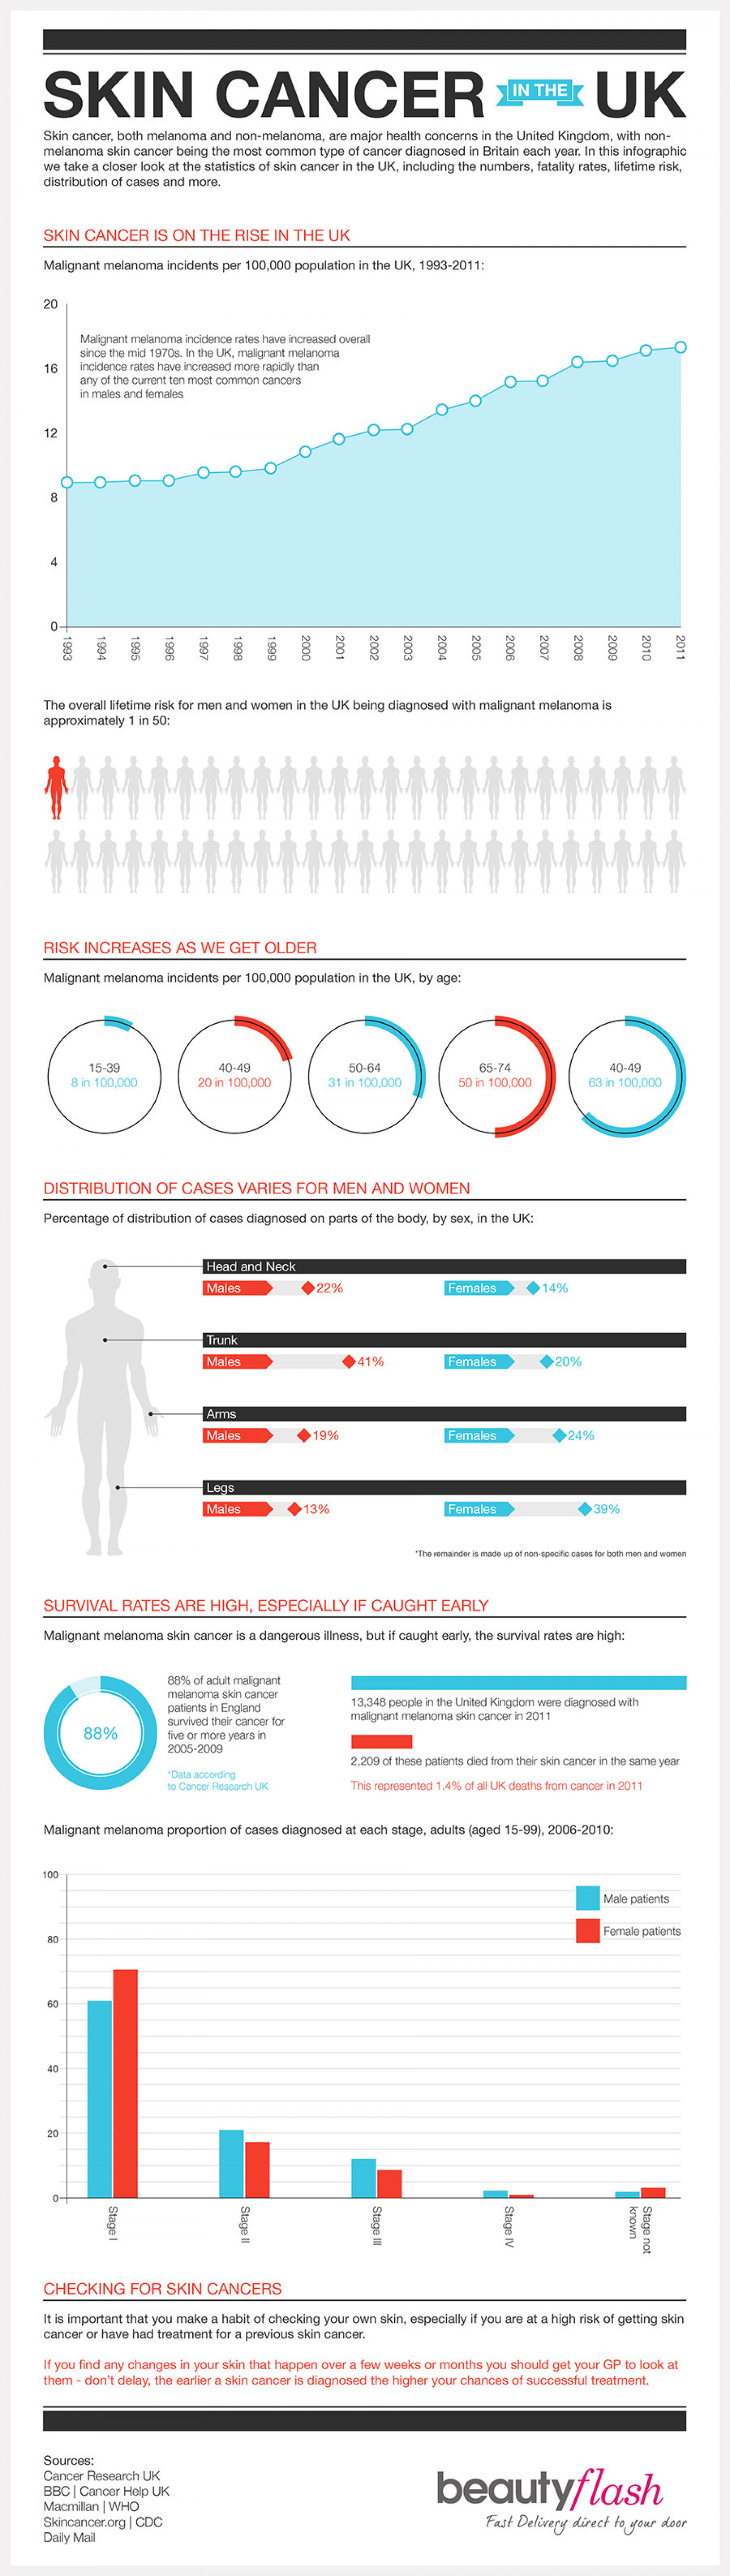 Skin Cancer in the UK Infographic